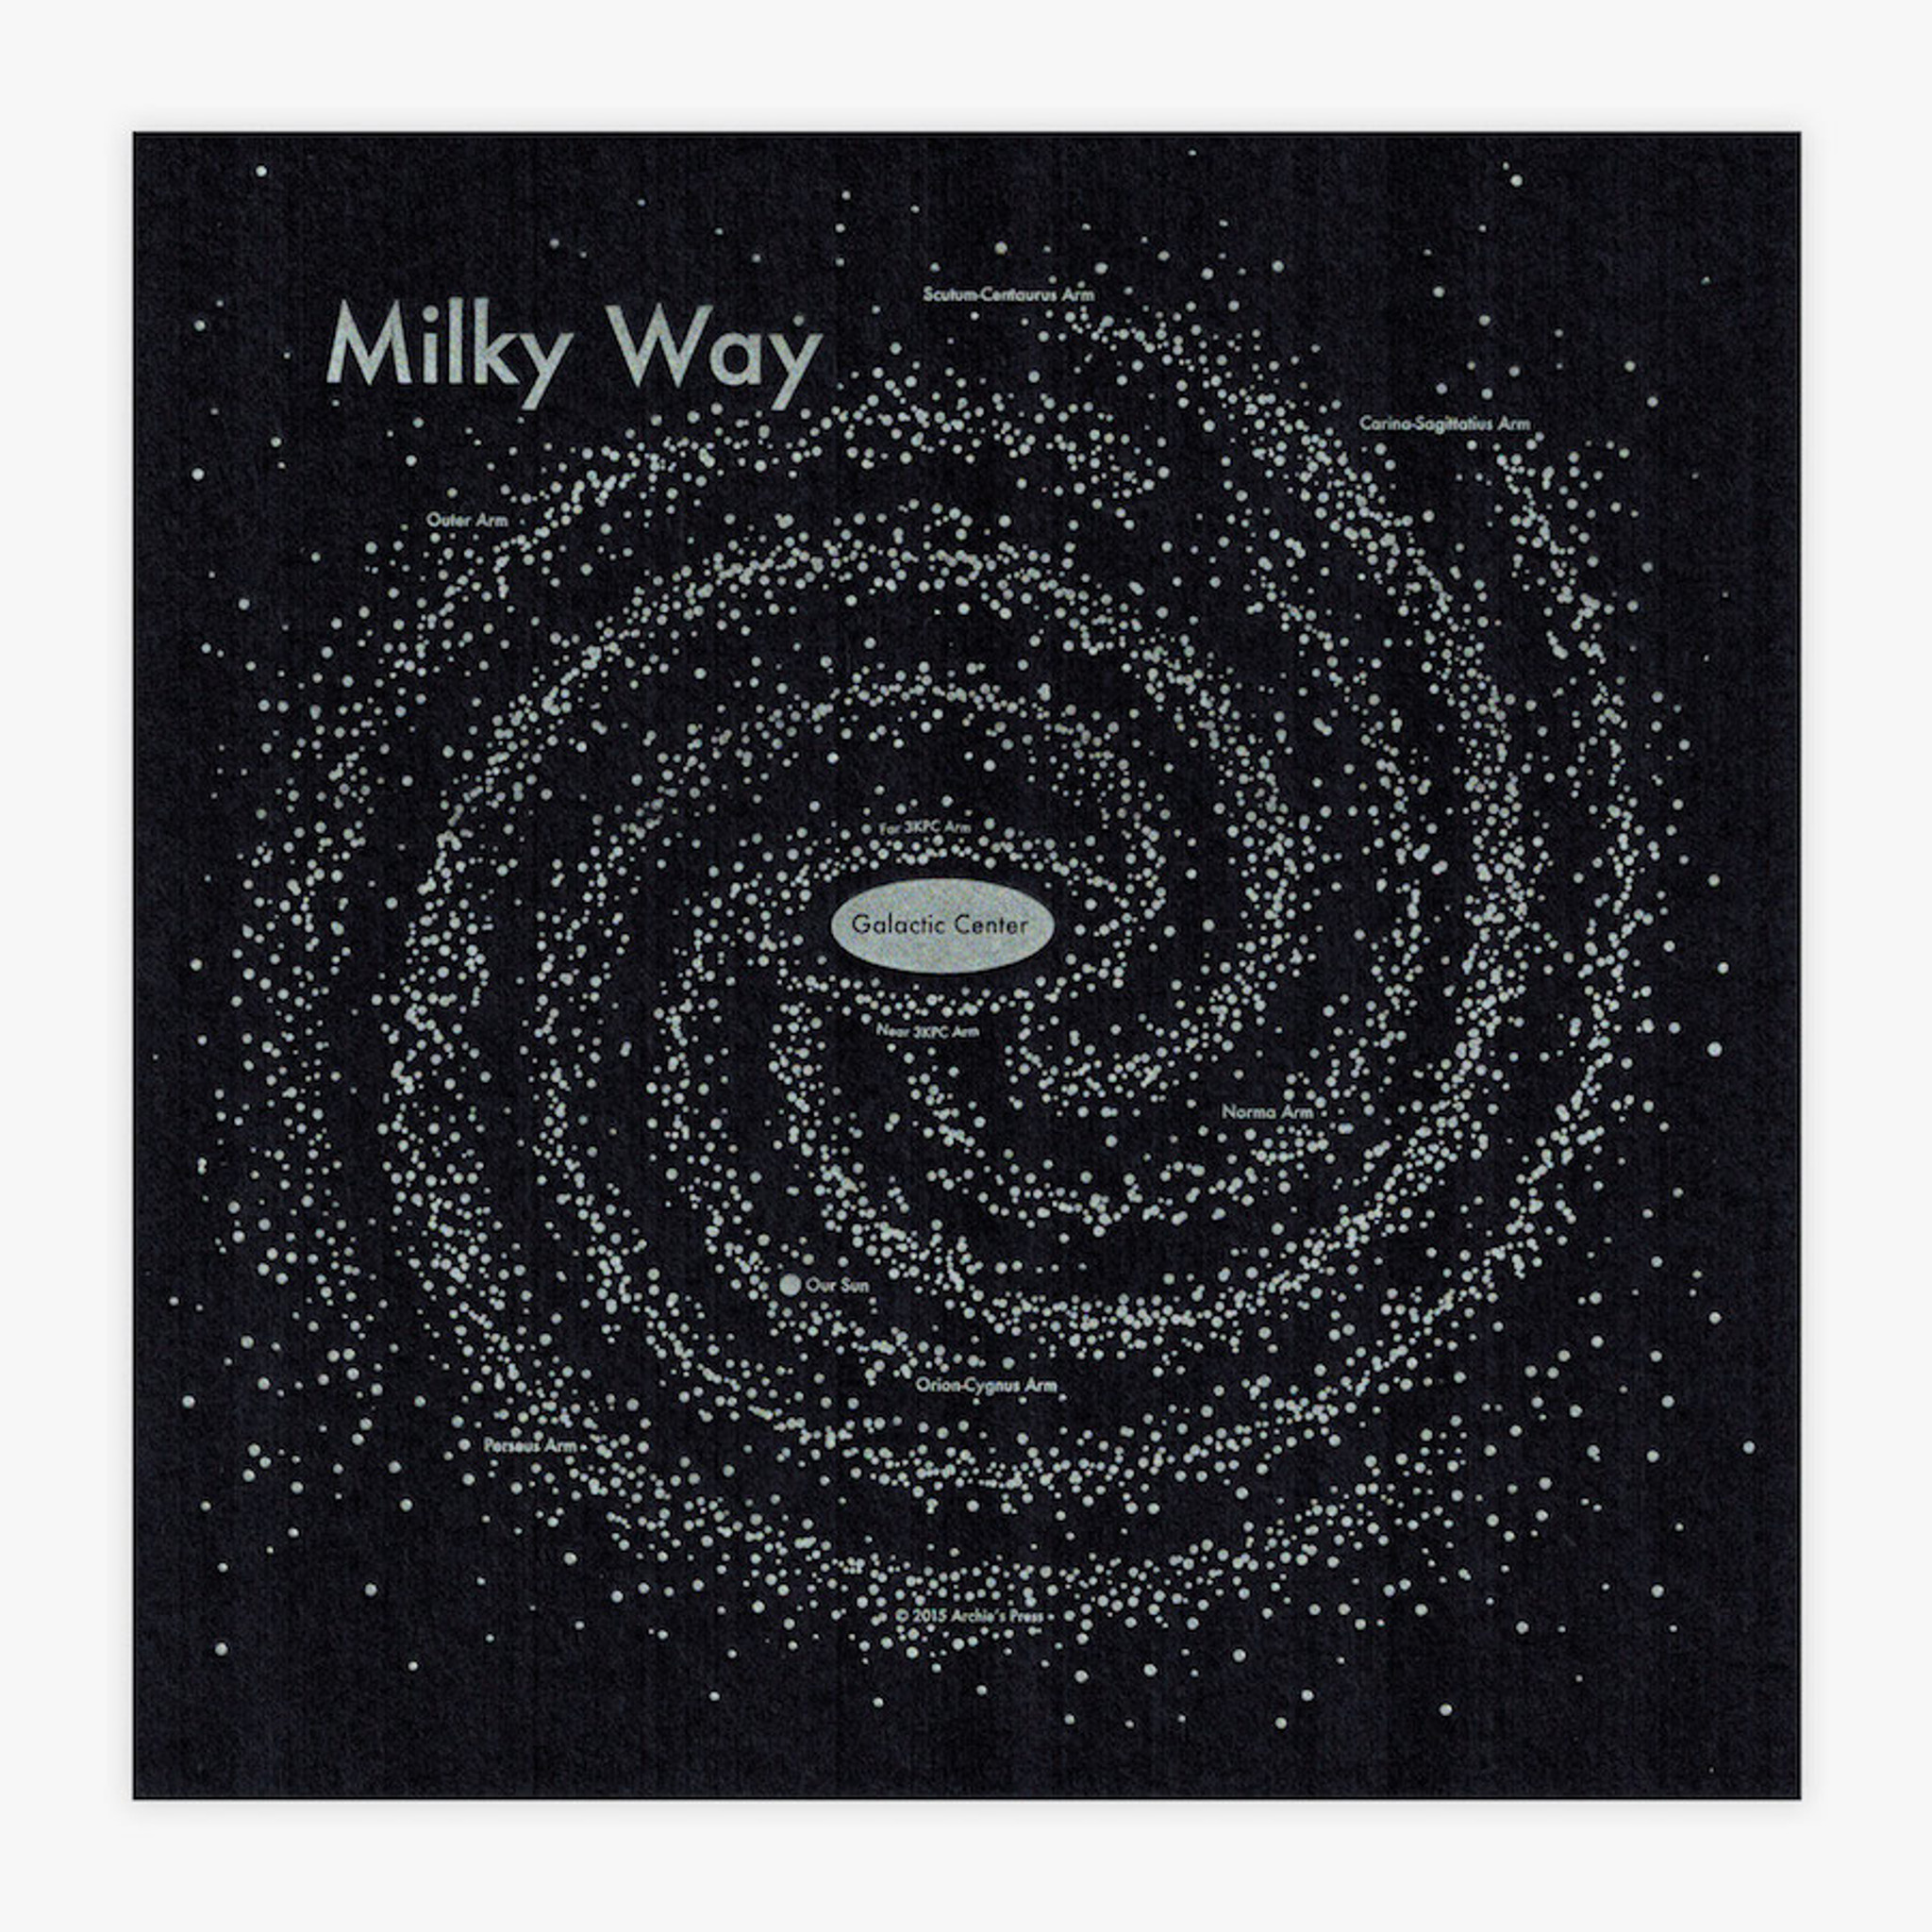 Archie's Press Milky Way